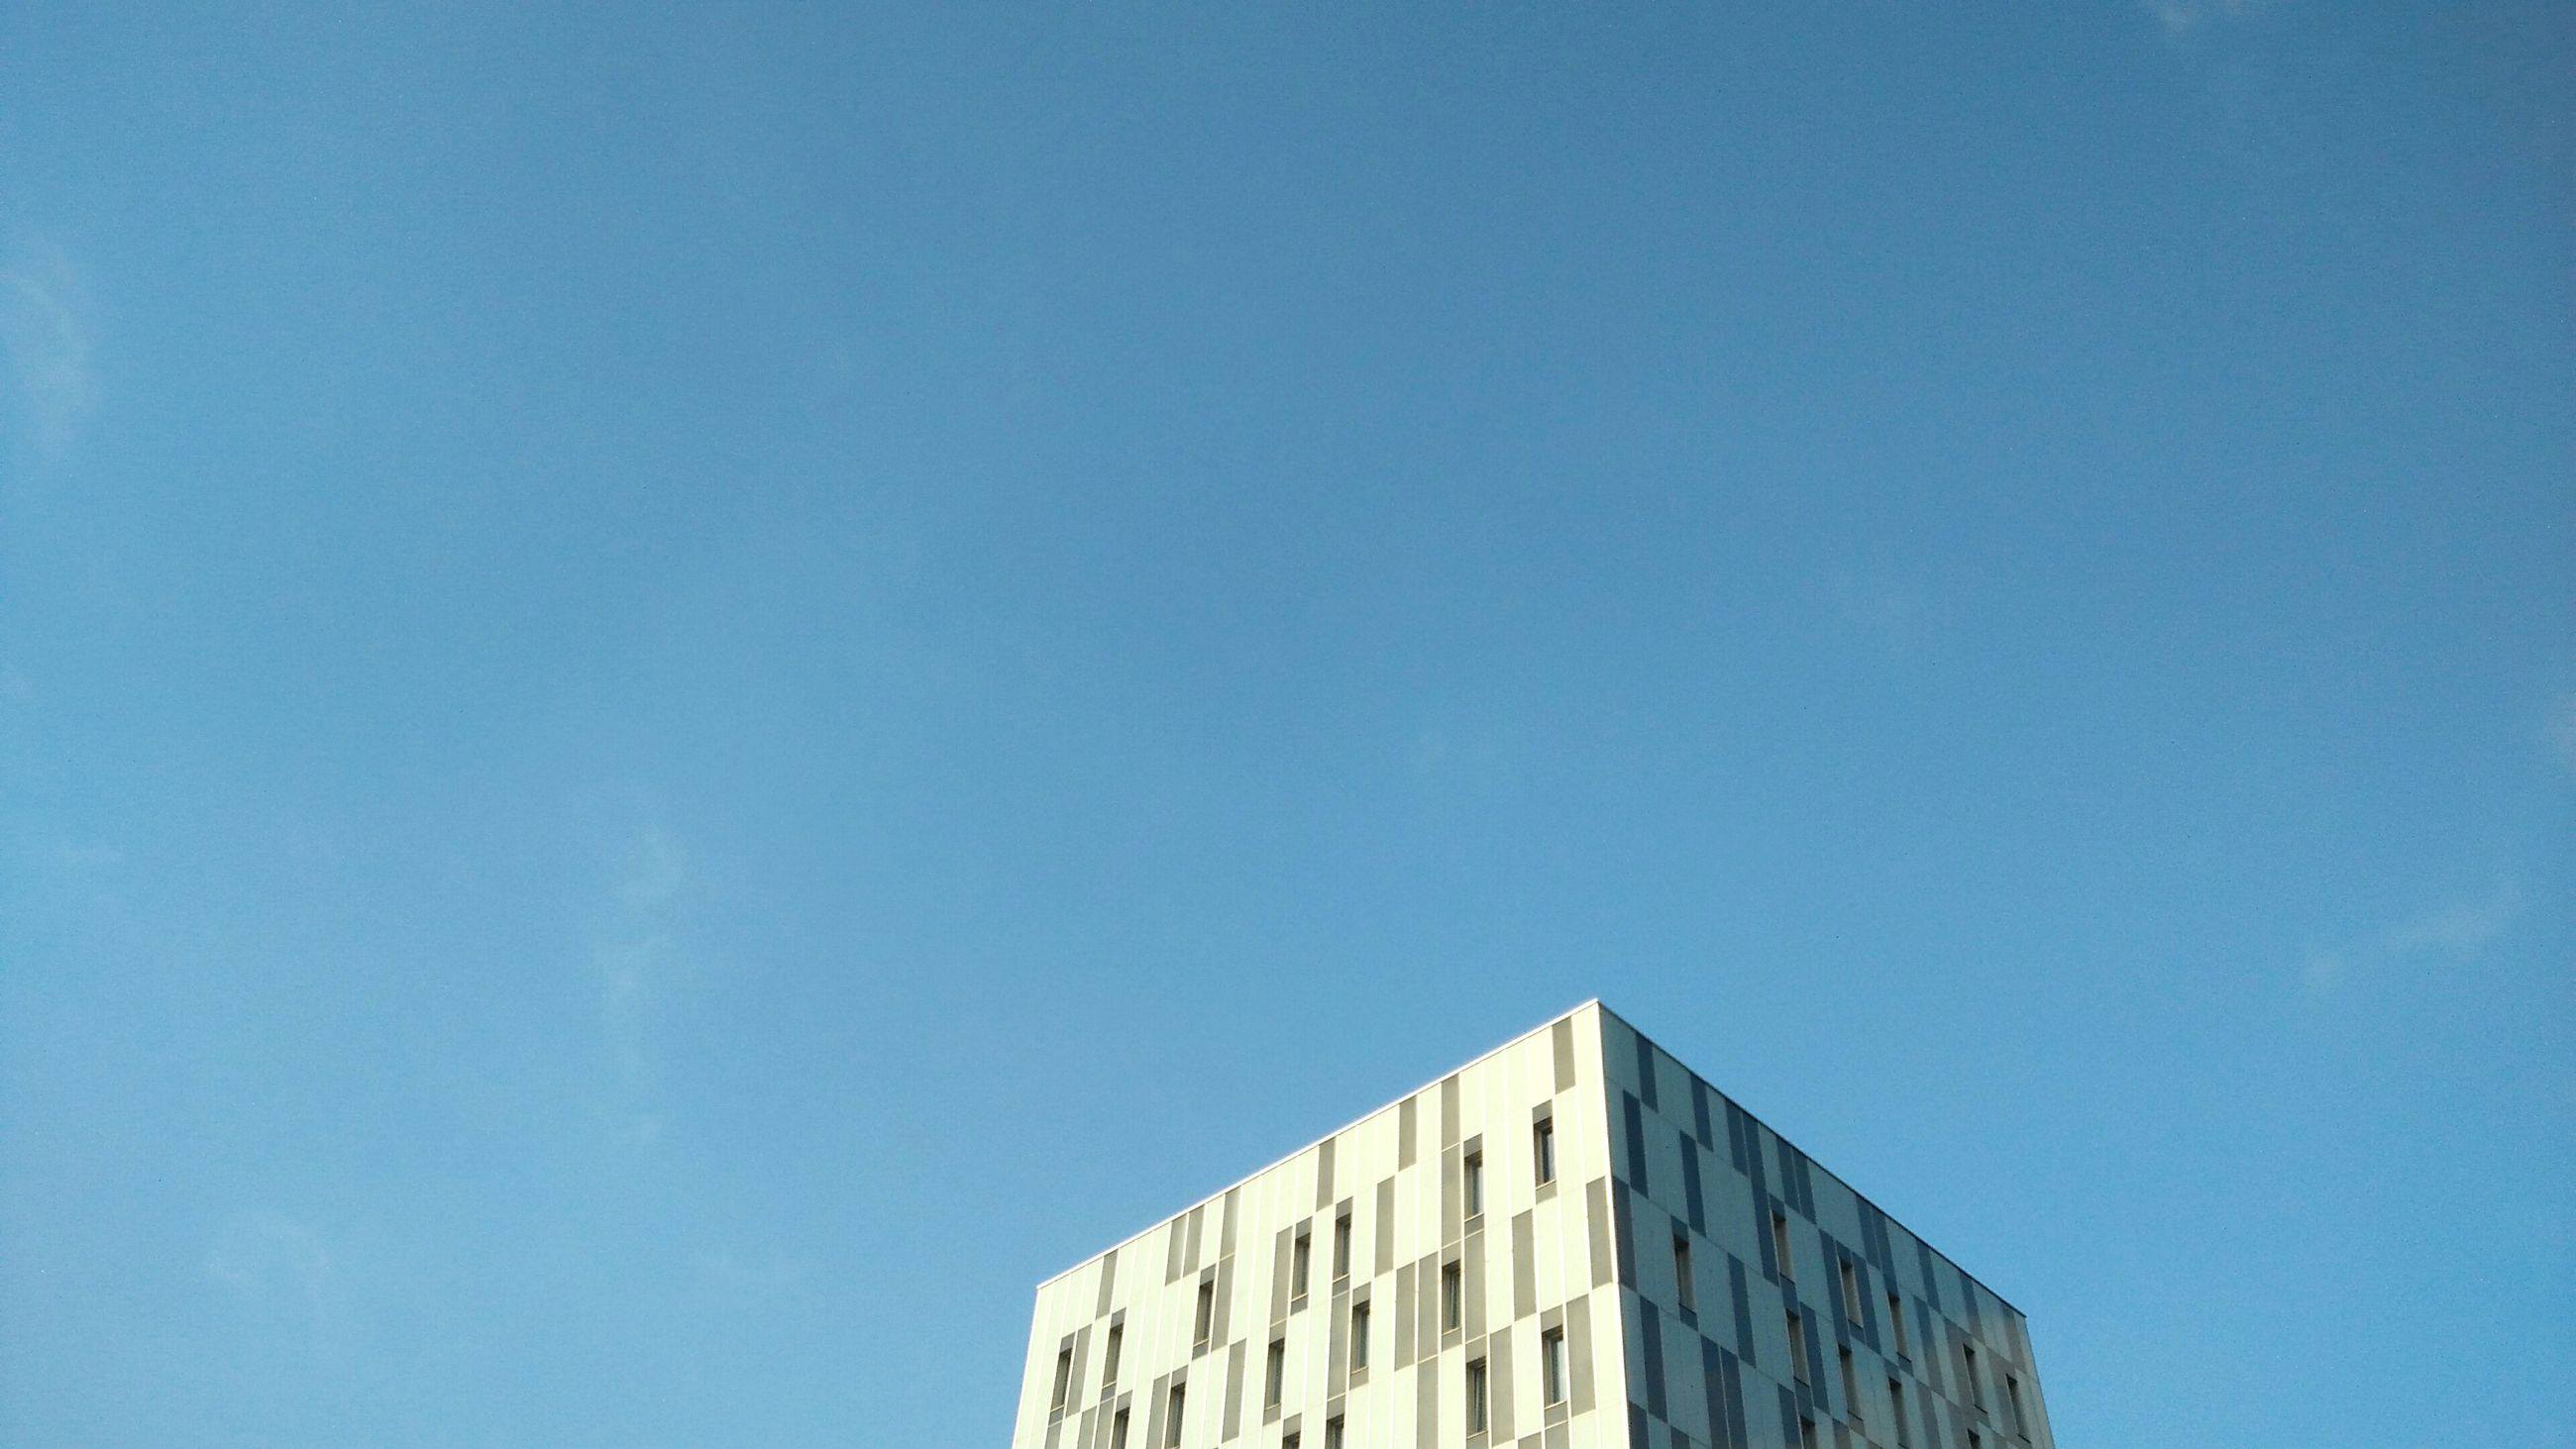 architecture, built structure, blue, low angle view, building exterior, no people, clear sky, day, outdoors, sky